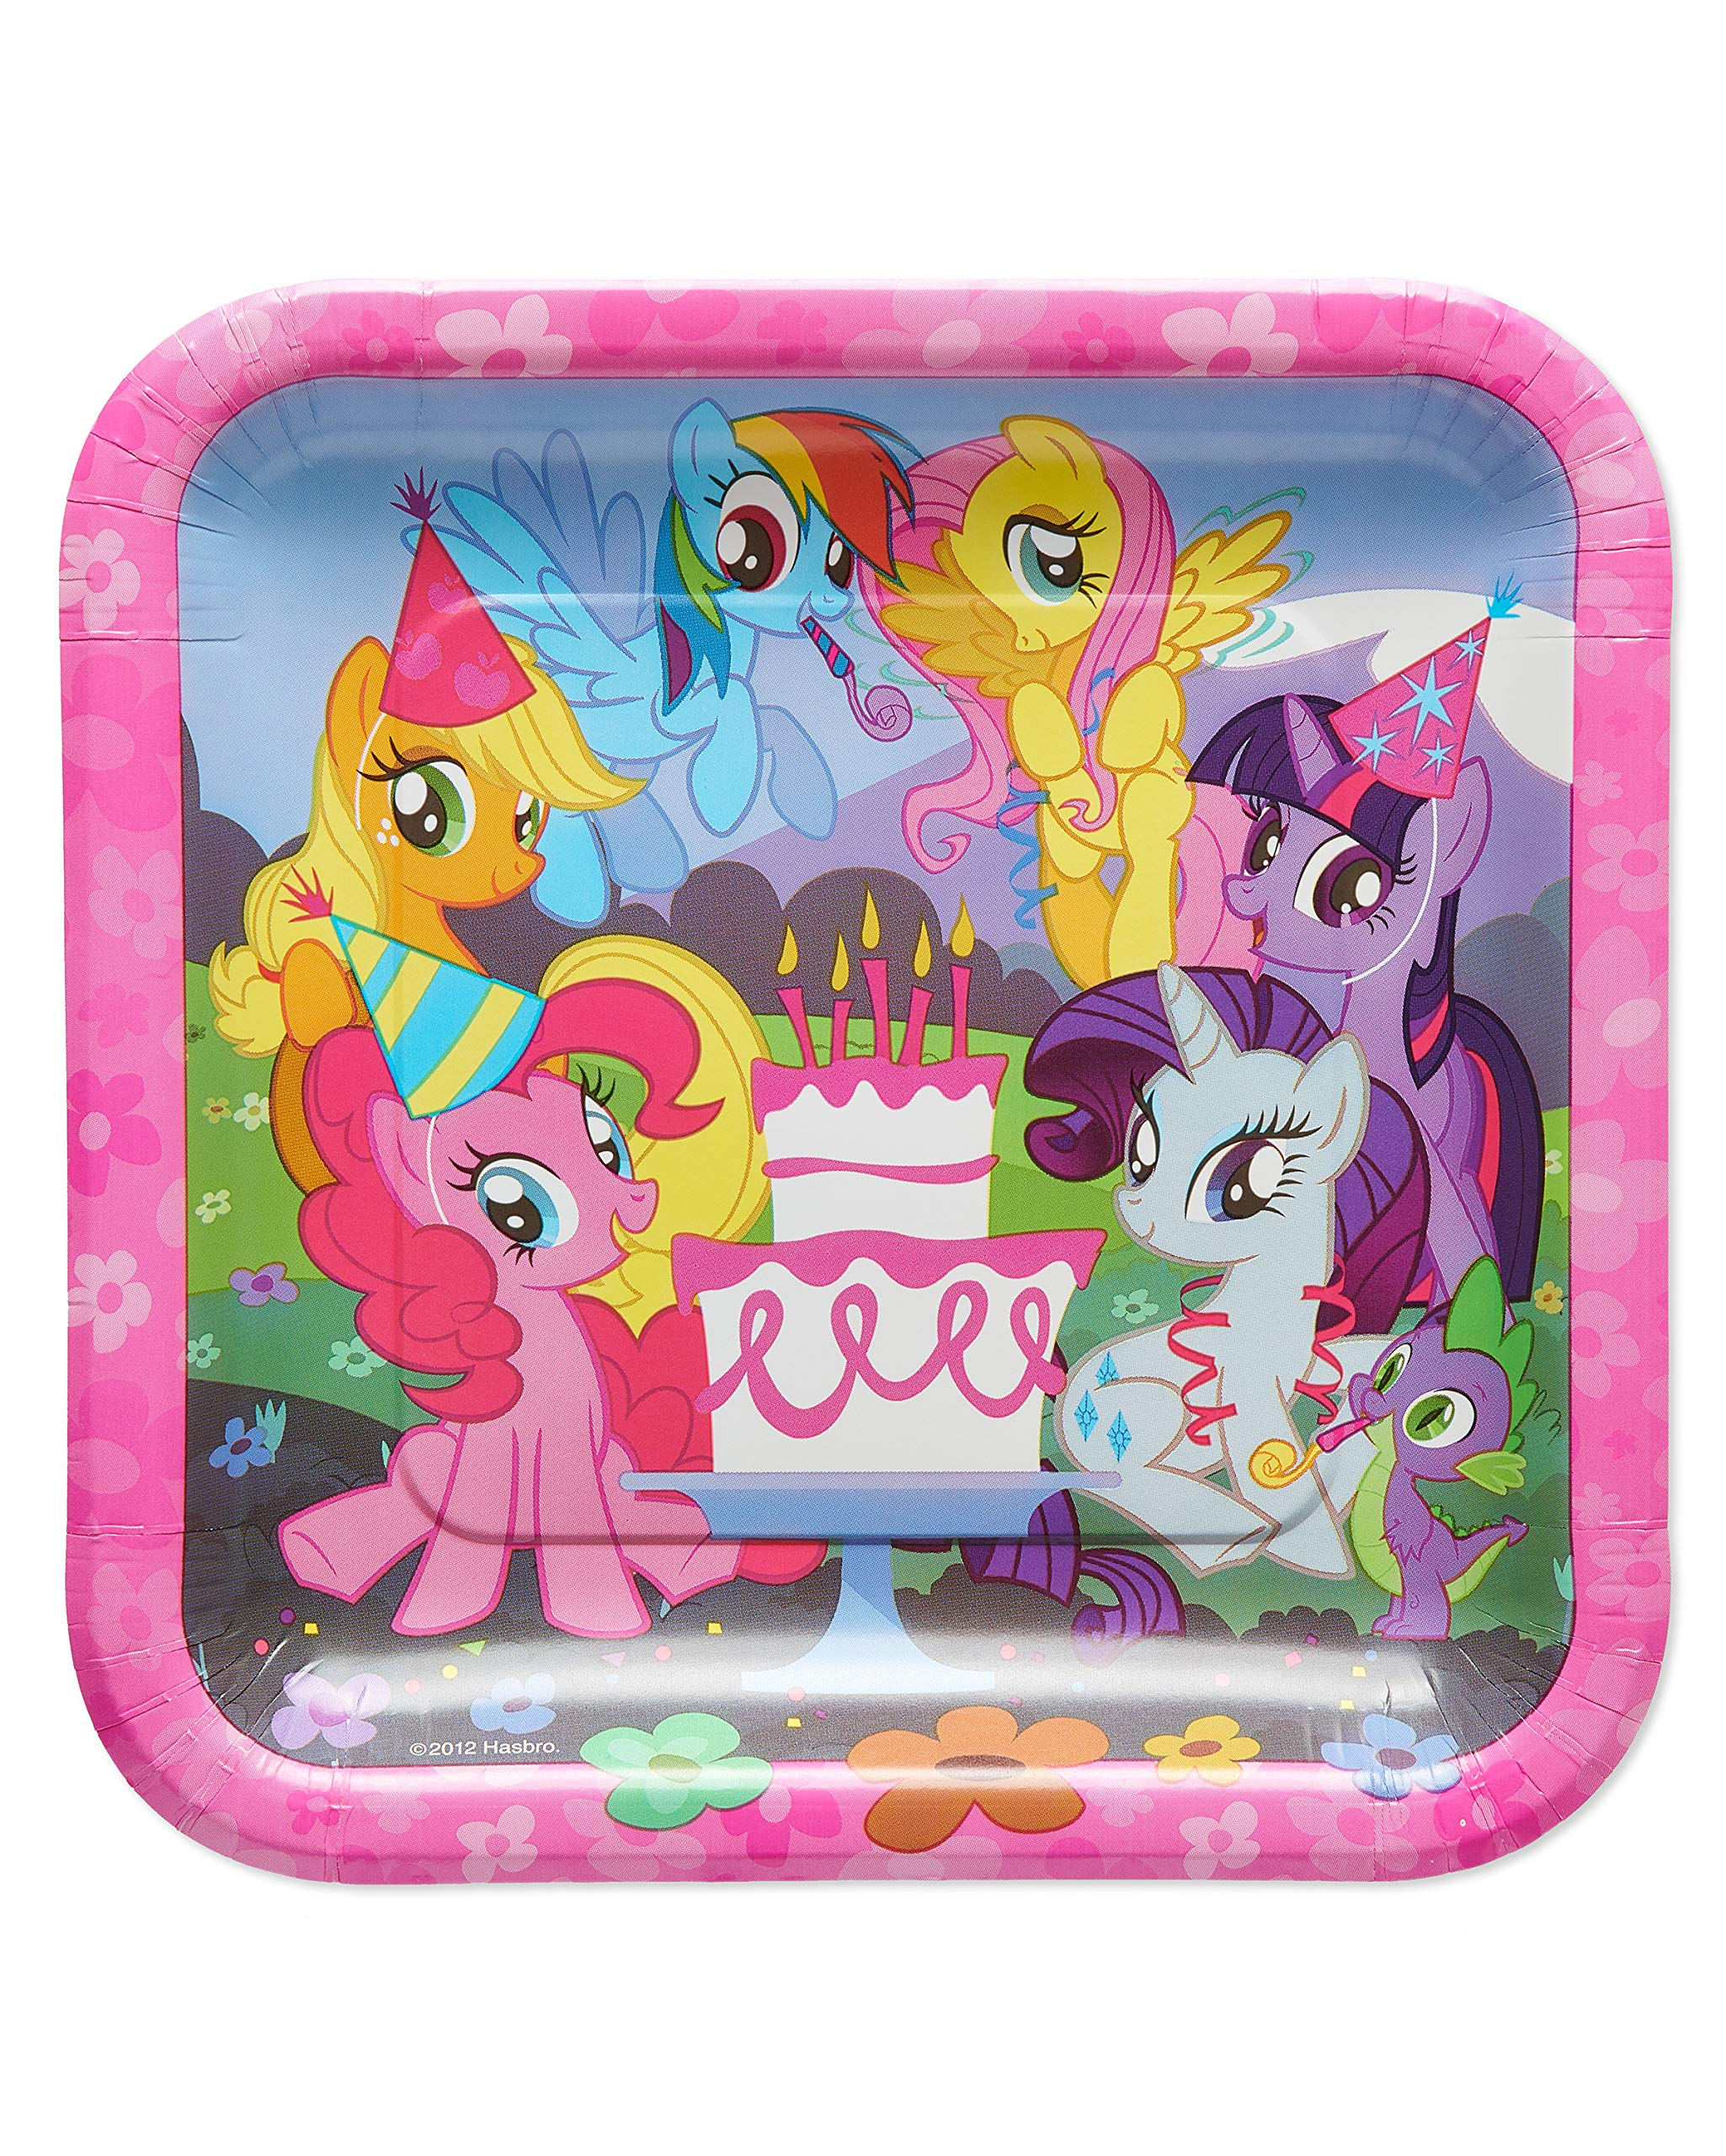 American Greetings My Square Little Pony Party Supplies, Disposable Paper Dinner Plates, 40-Count, Lunch